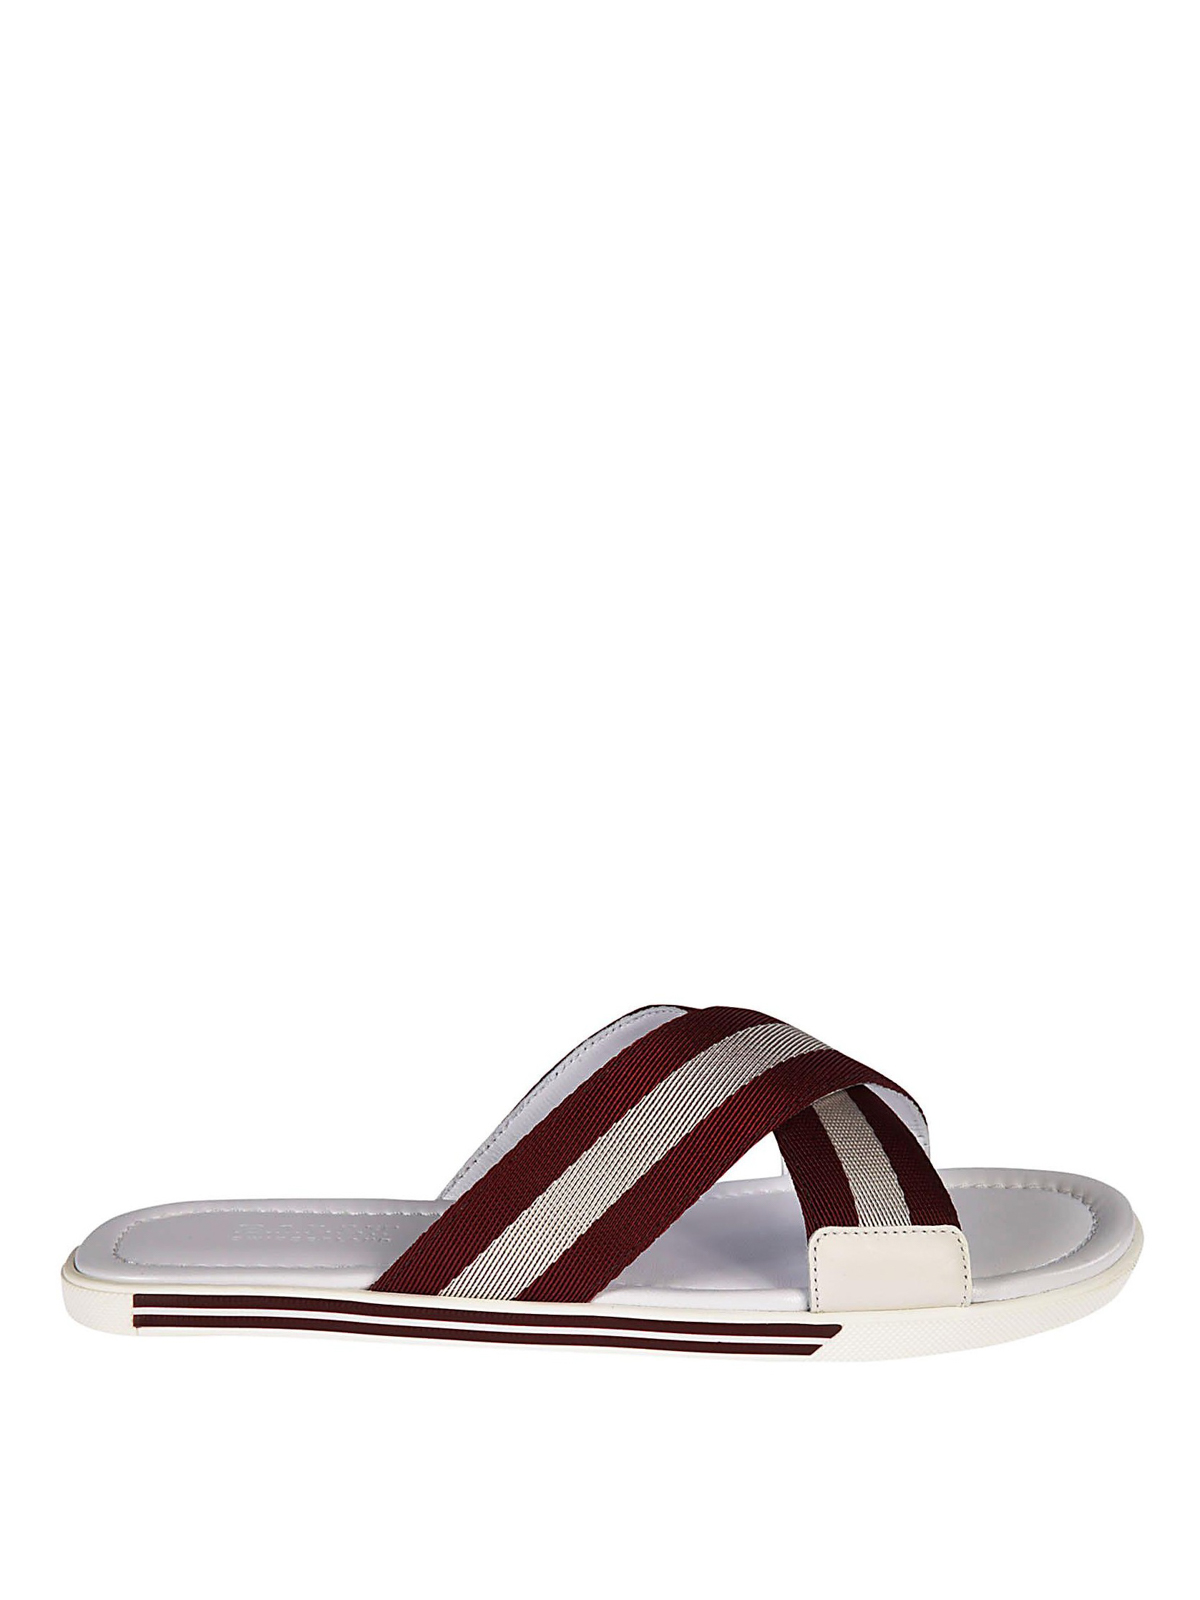 063420e5bf49 Bally - Bonks cross over sandals - sandals - 6213024